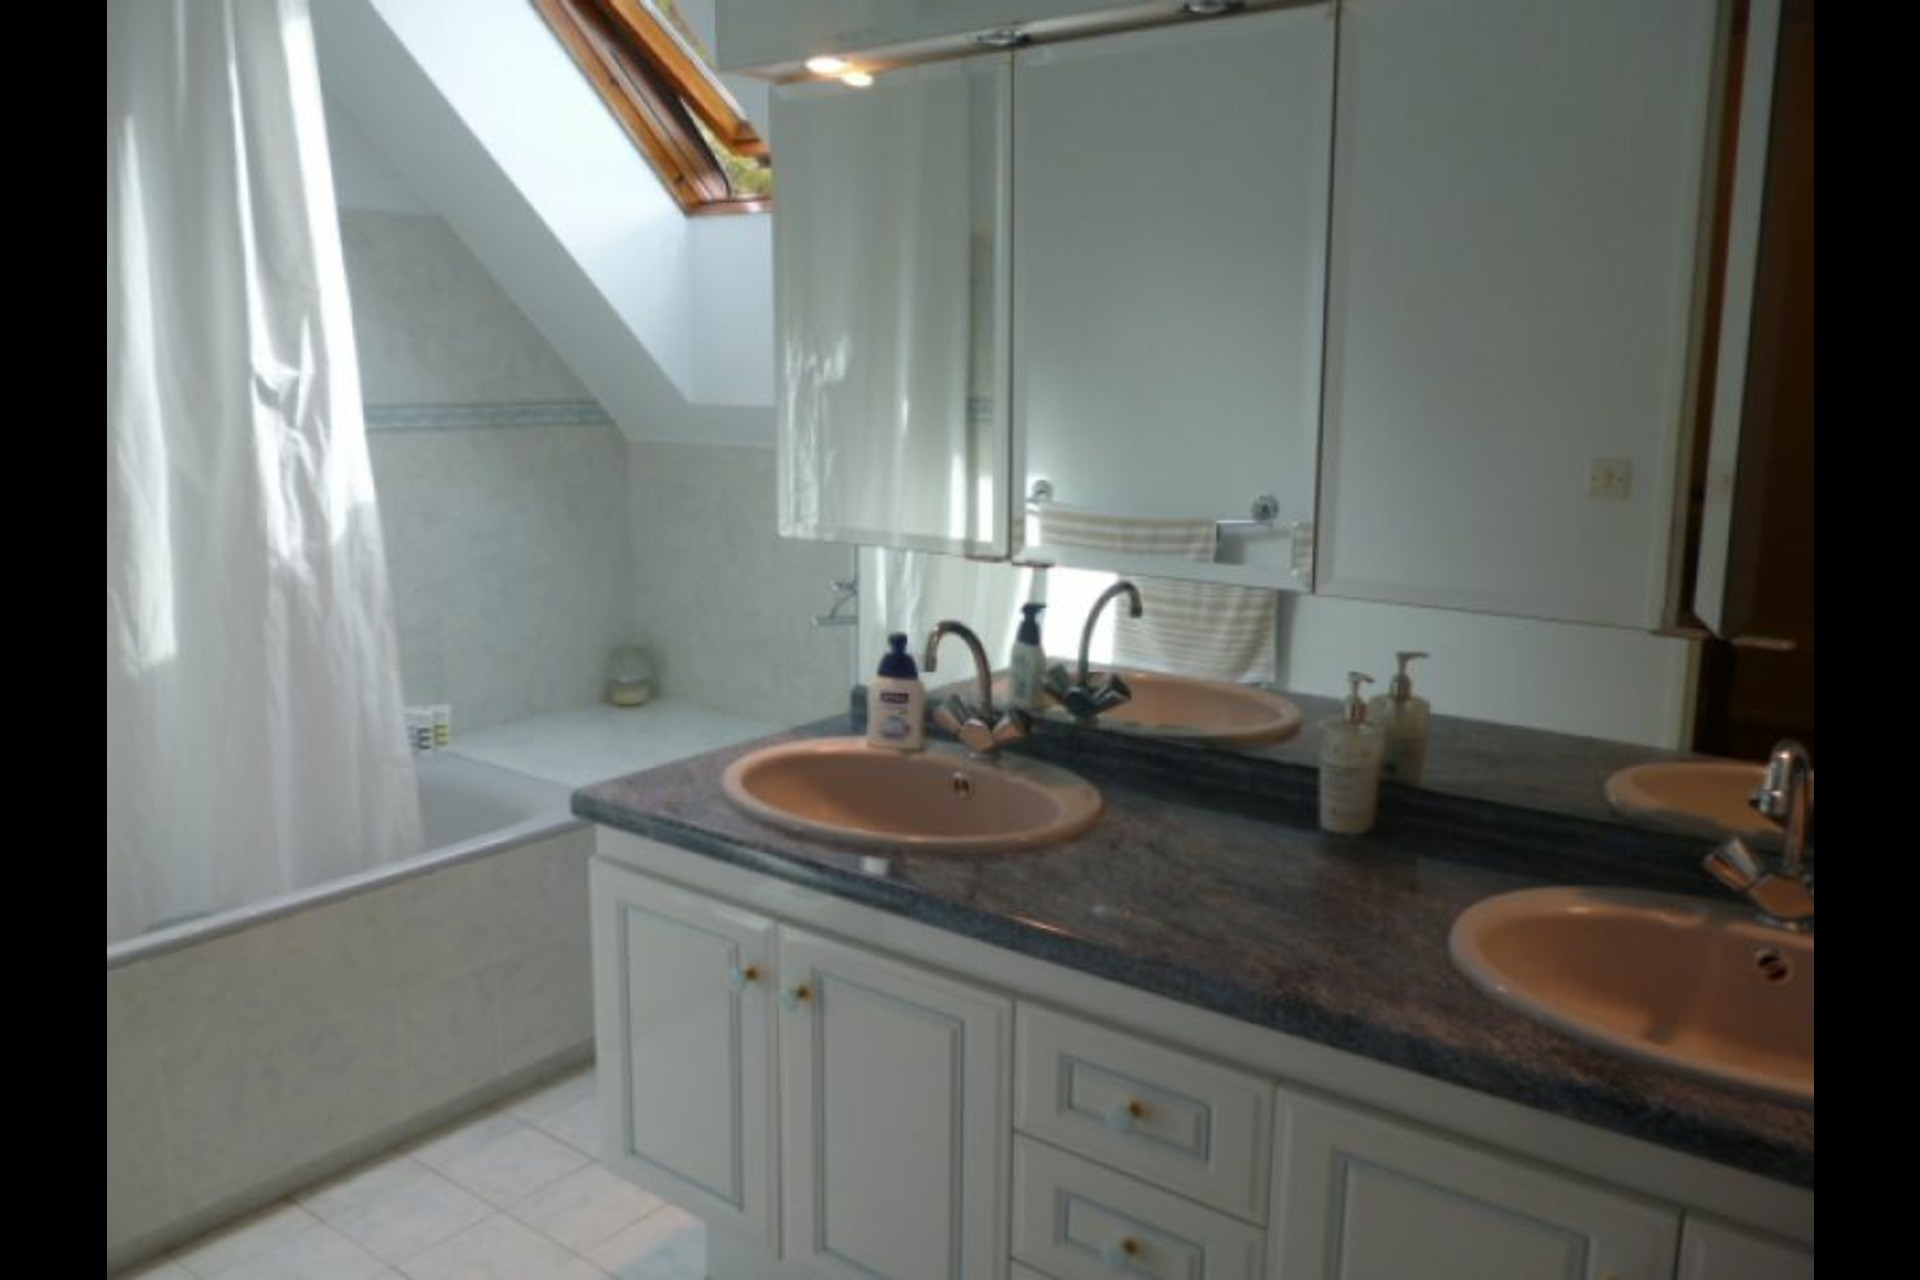 image 4 - House For rent feucherolles - 6 rooms